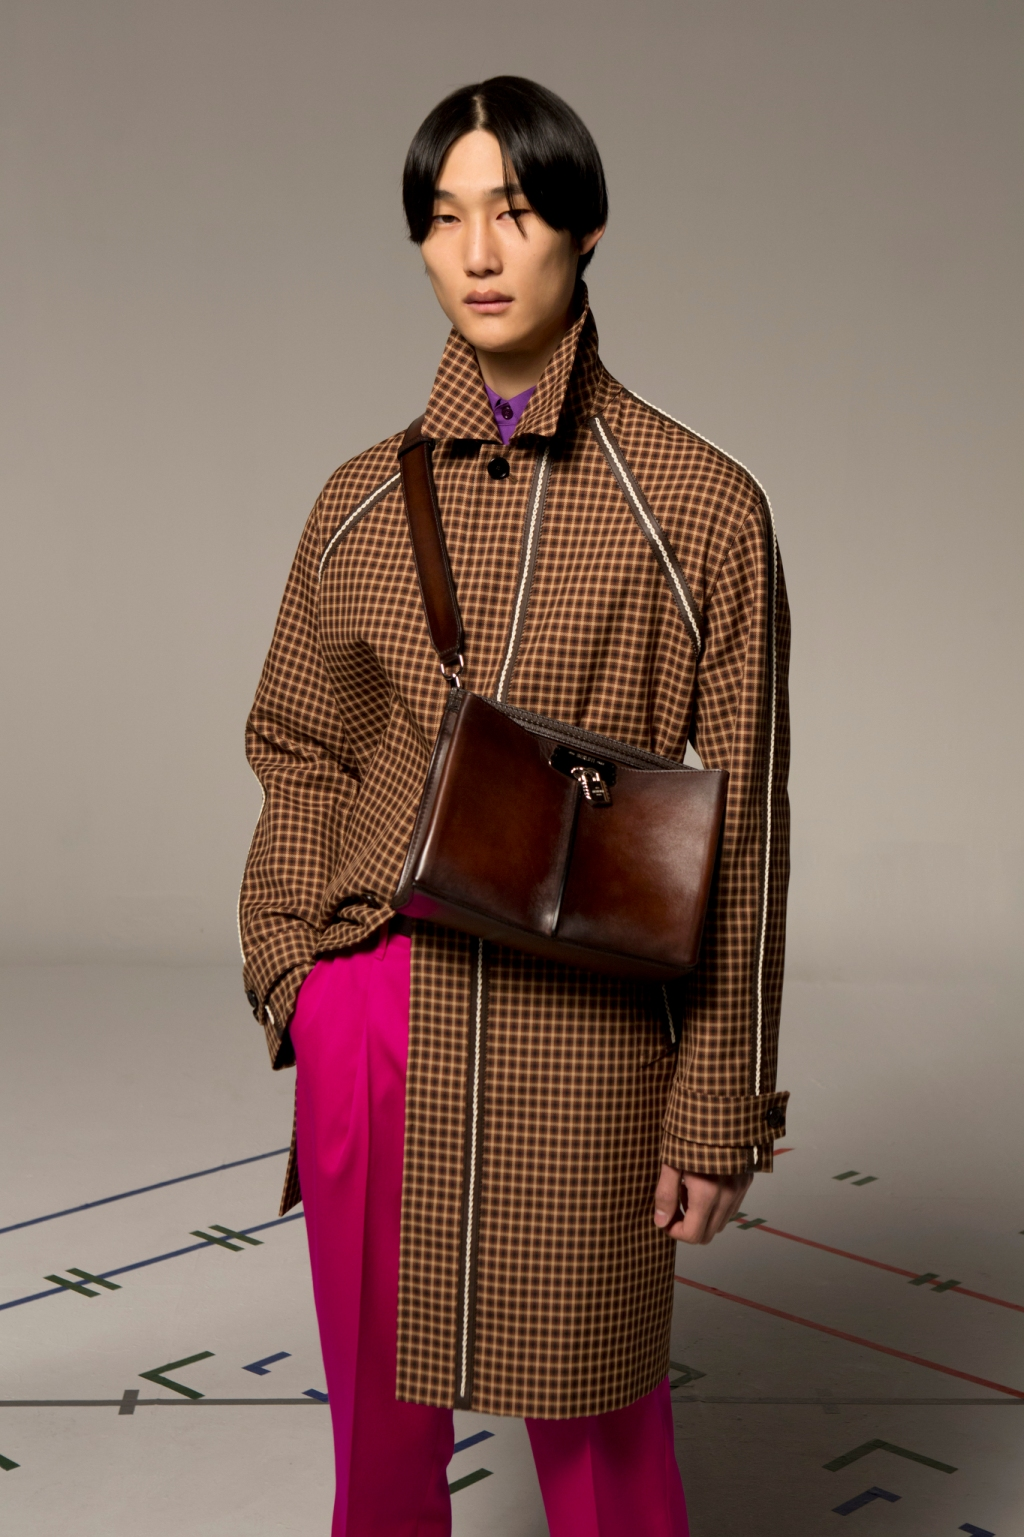 A look from Berluti's upcoming fall 2021 collection.